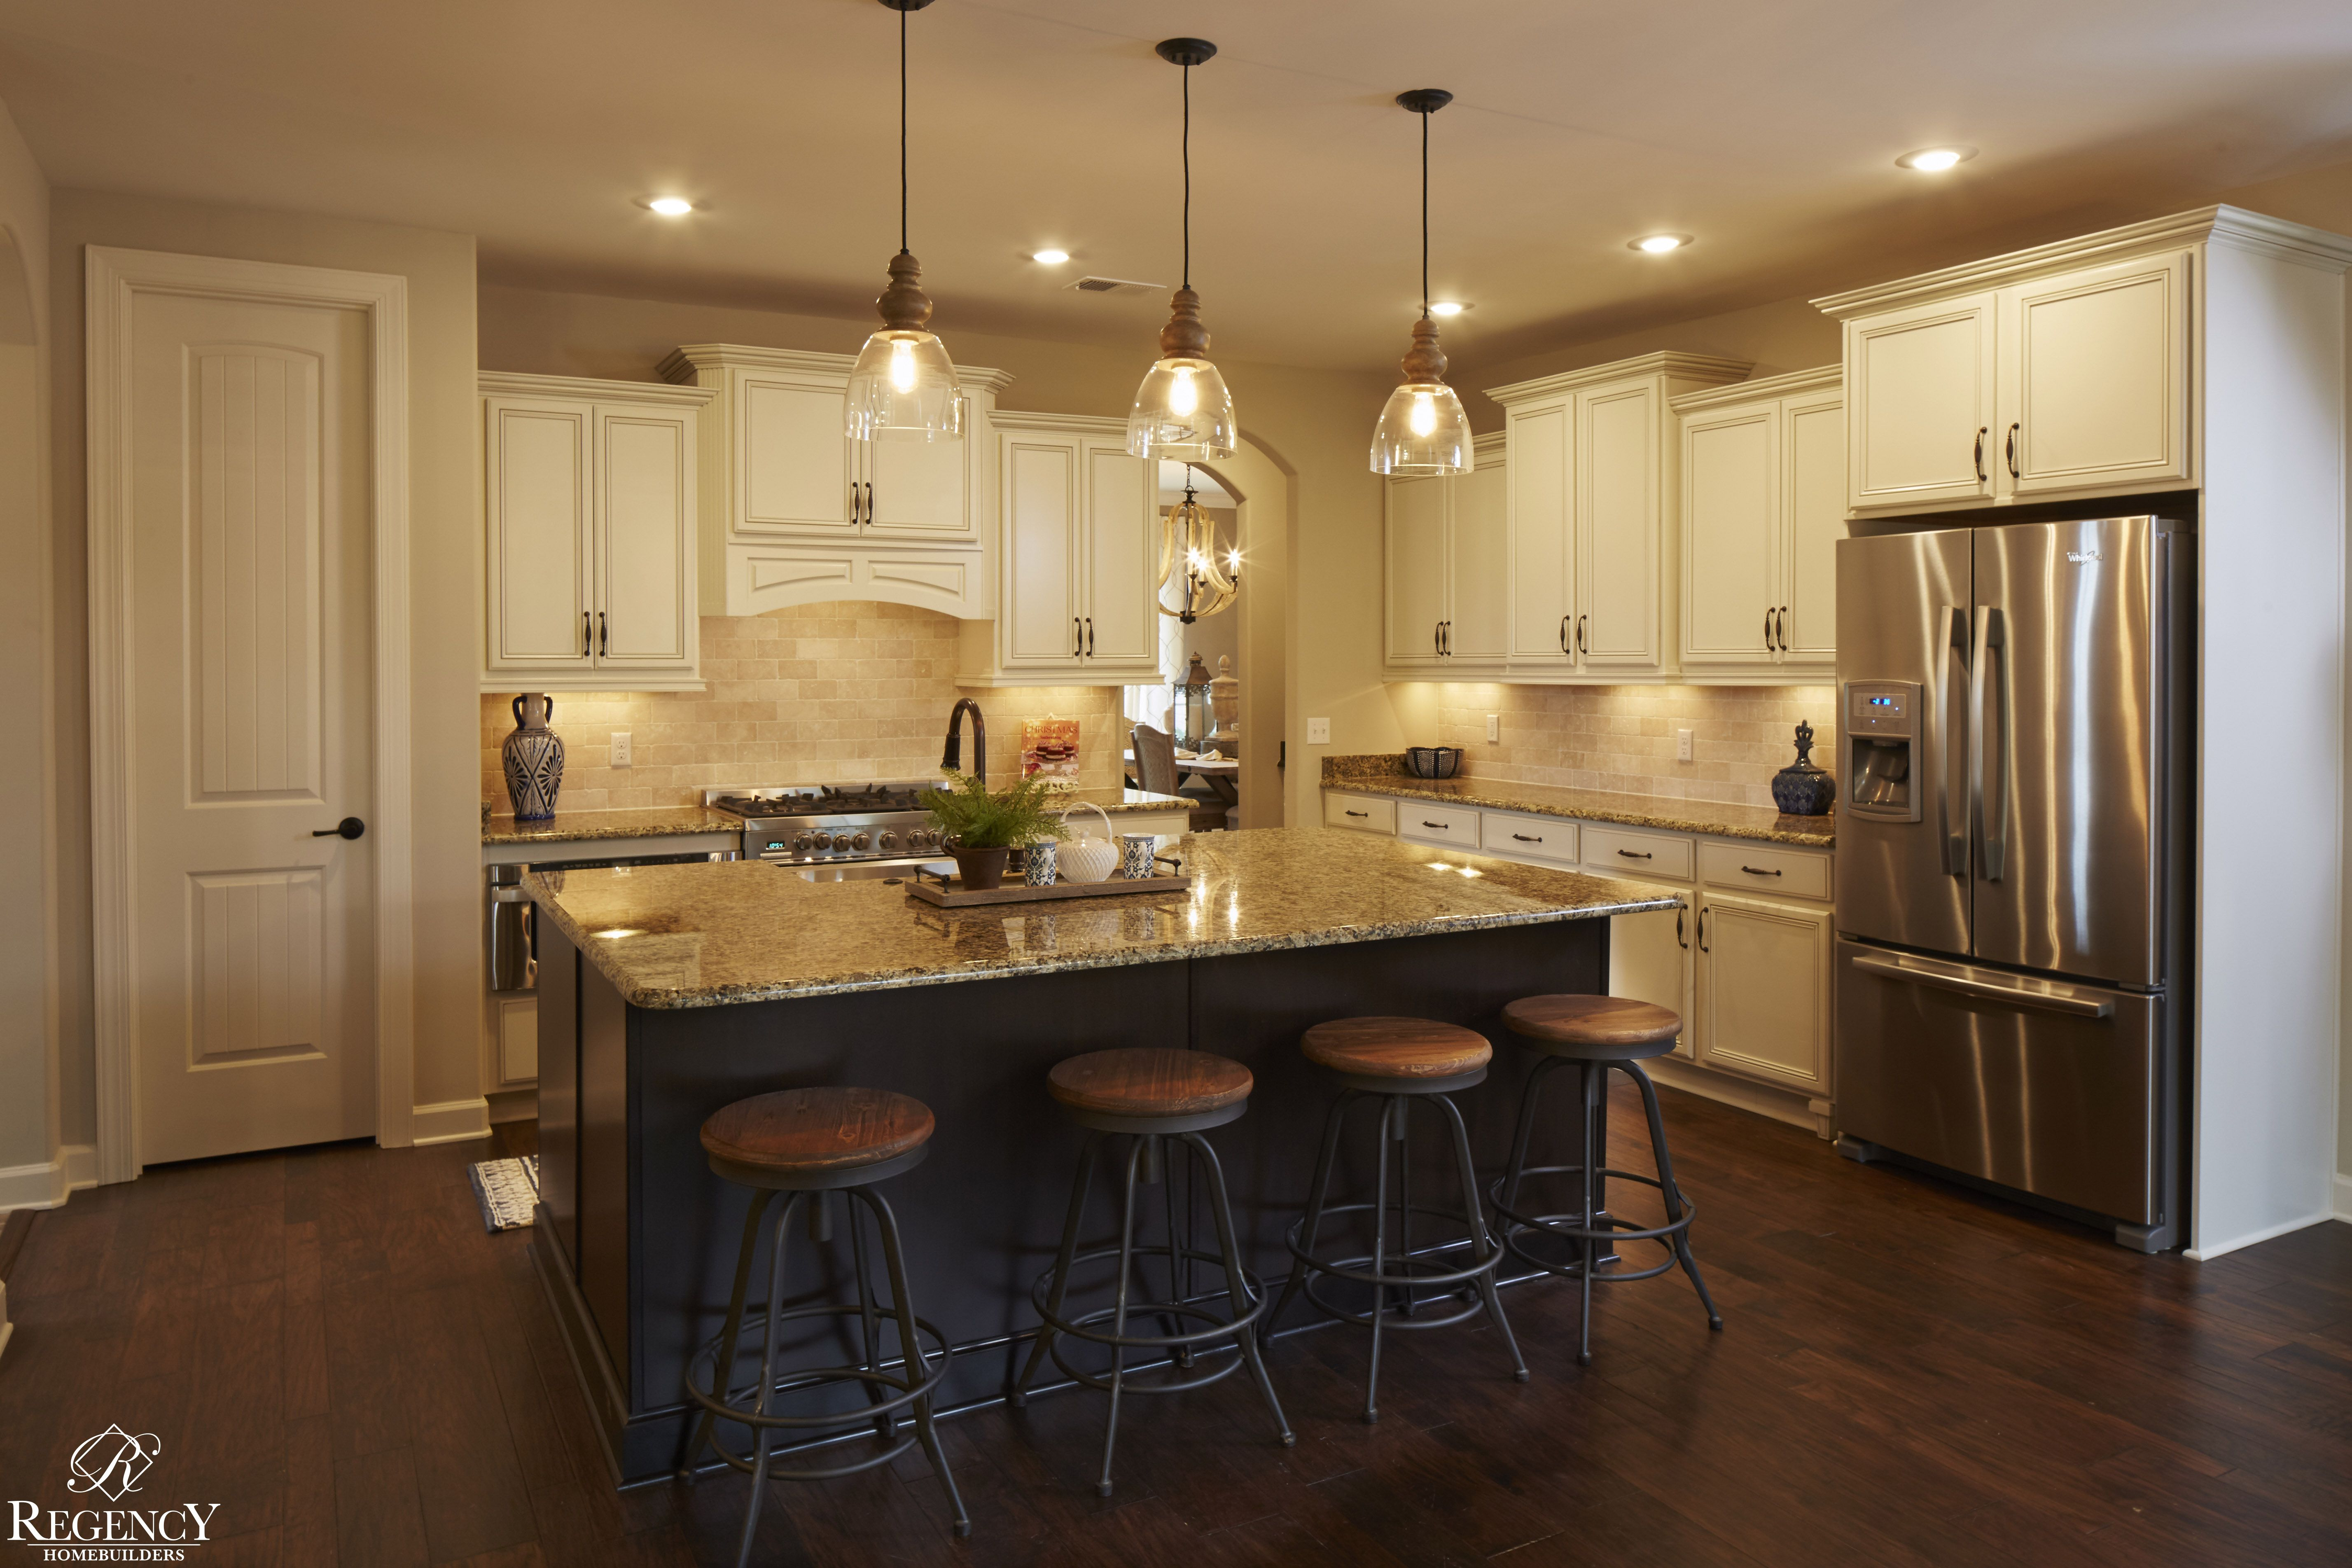 Regency Homebuilders : Open Concept Living, Large Kitchen, Chiffon Cabinets,  Staggered Cabinets,